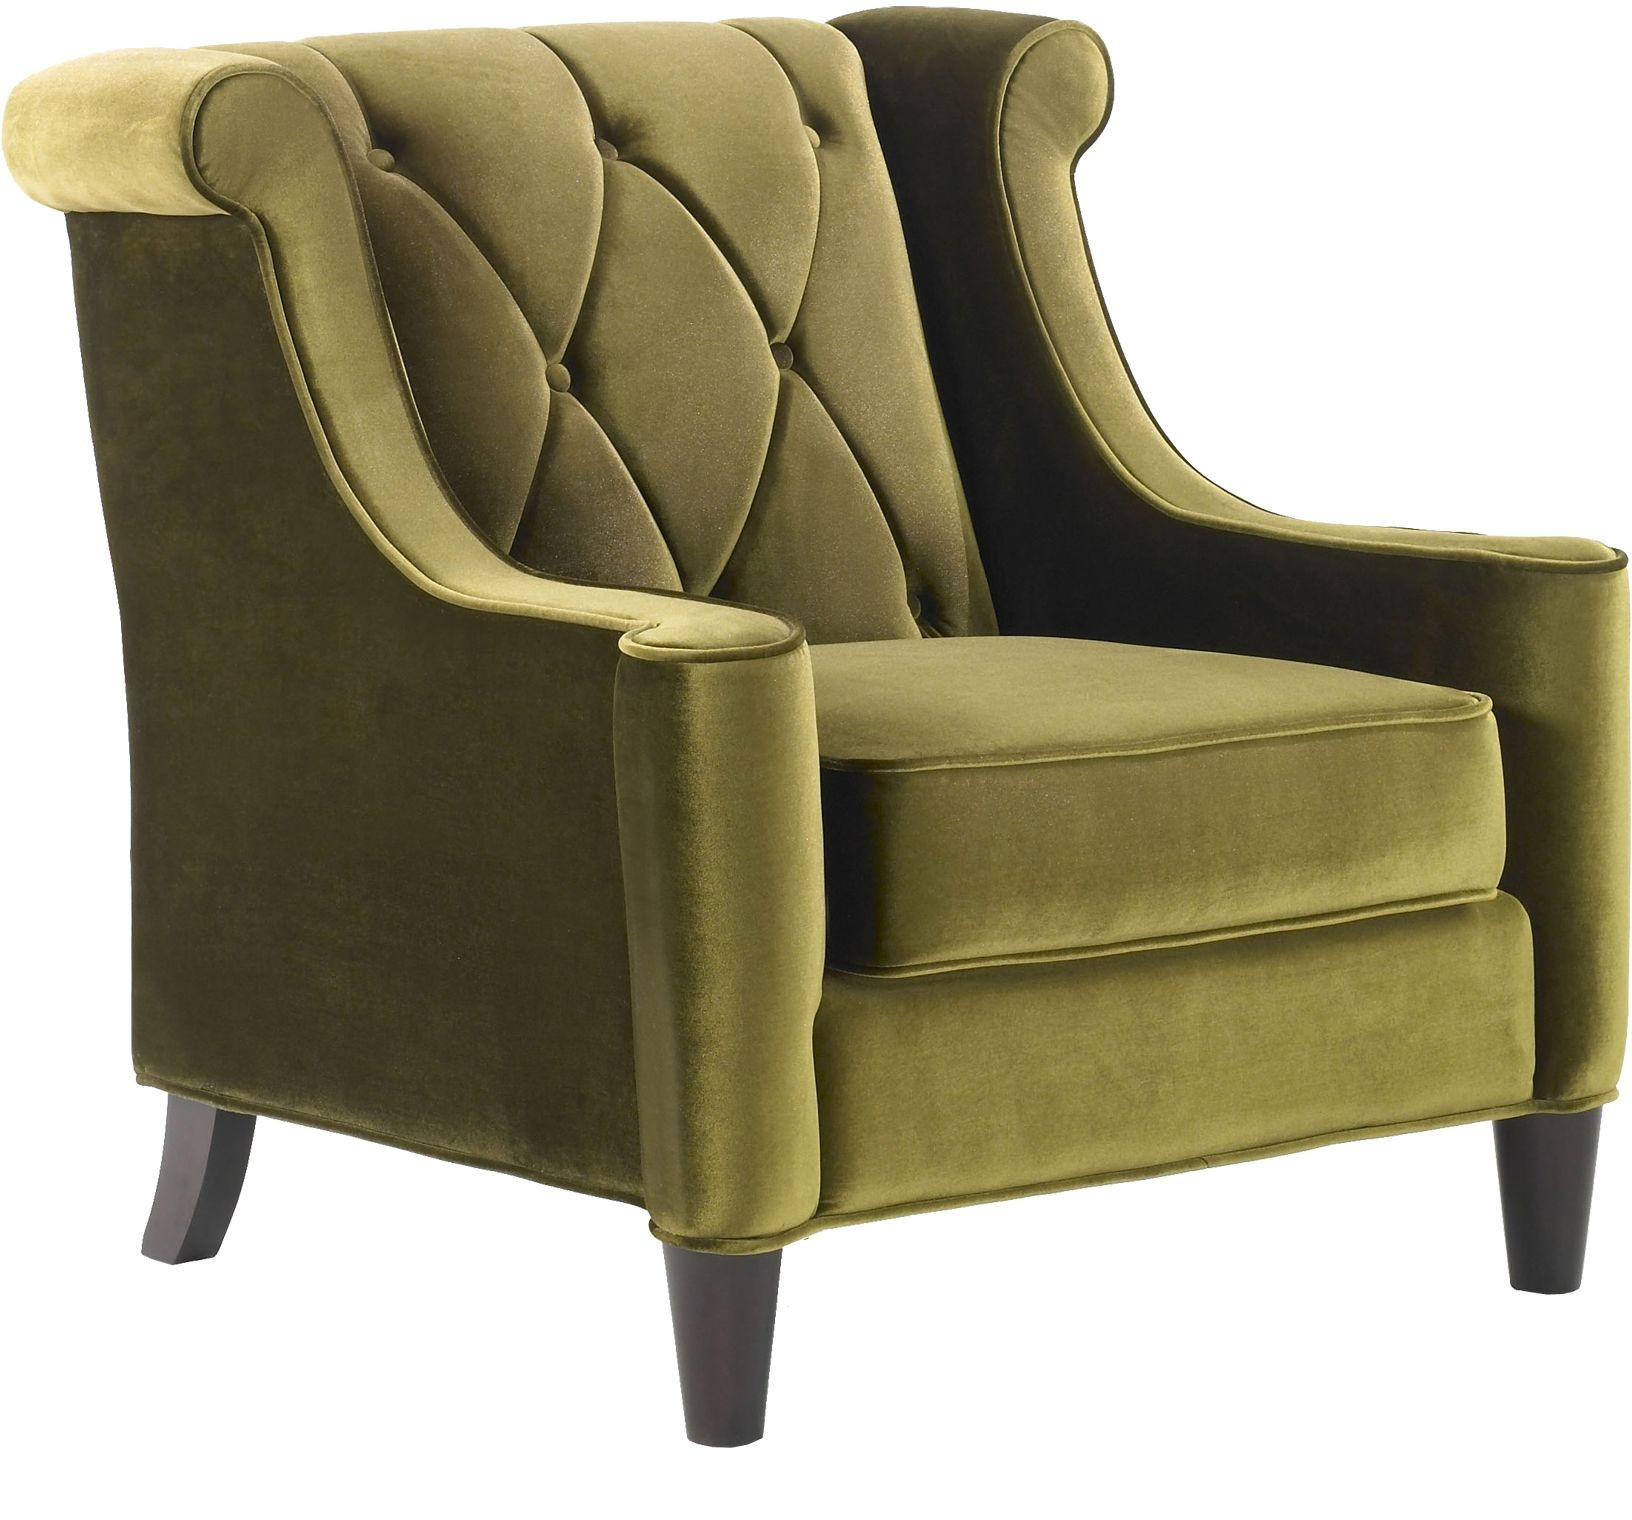 green velvet tufted chair steel furniture barrister lc8441green armen living